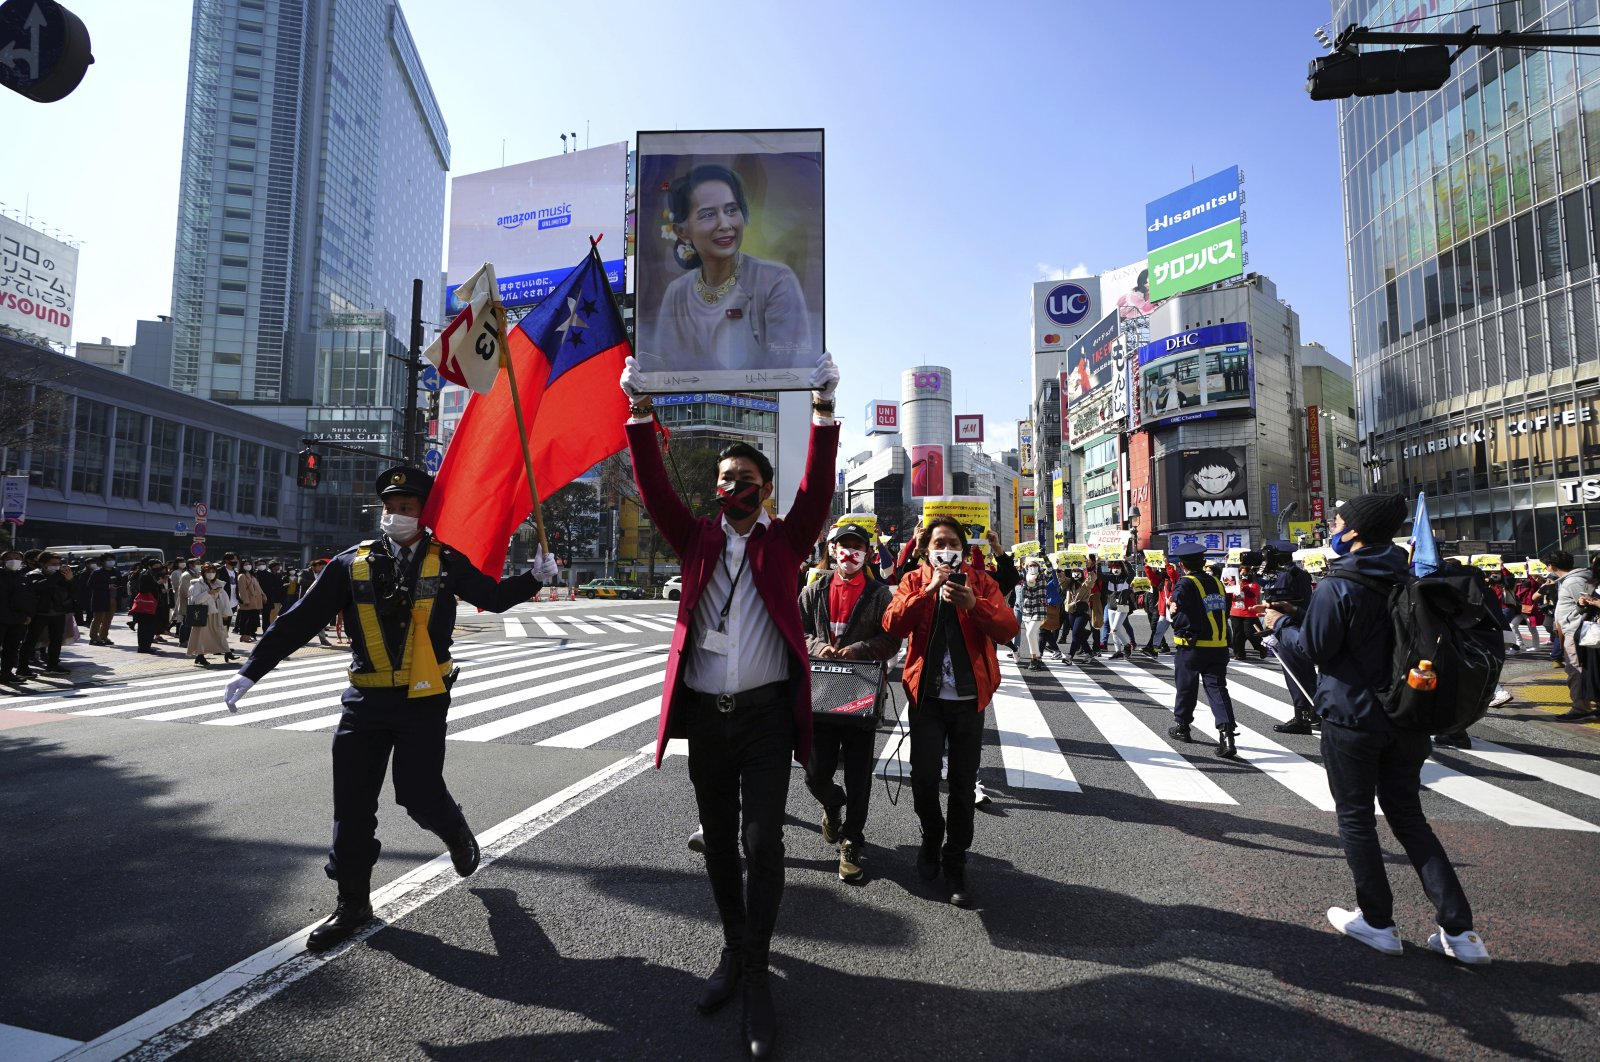 Myanmar people living in Japan and supporters march though Shibuya pedestrian crossings during a protest, Feb. 14, 2021, in Tokyo, Japan. (AP Photo)